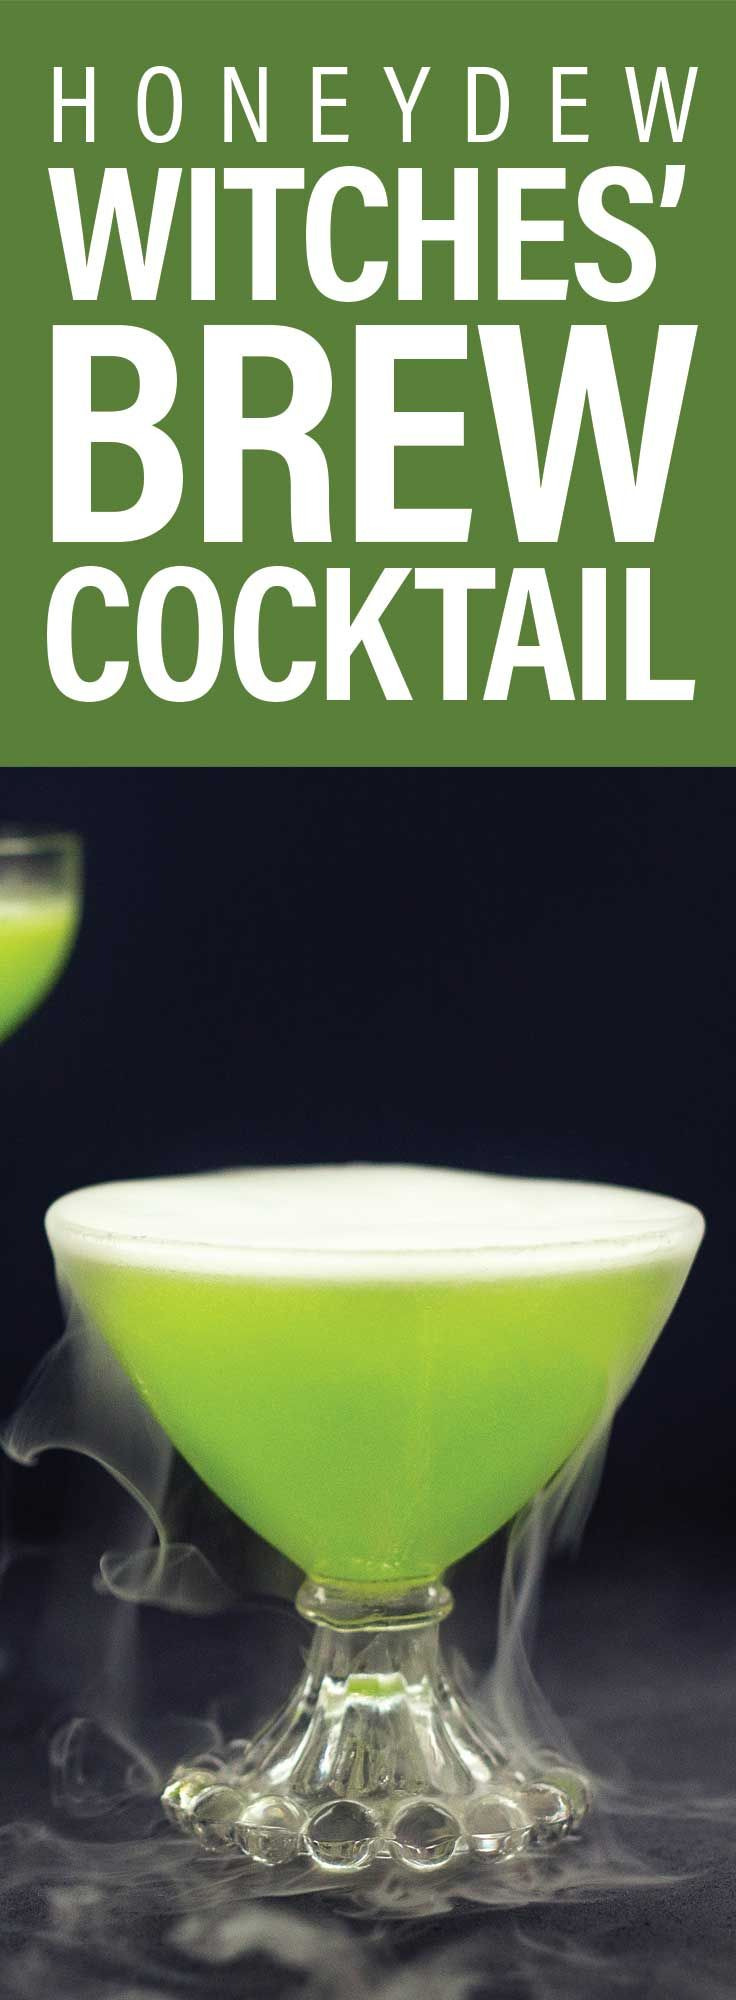 How to Make a Honeydew Witches' Brew Cocktail (Video)